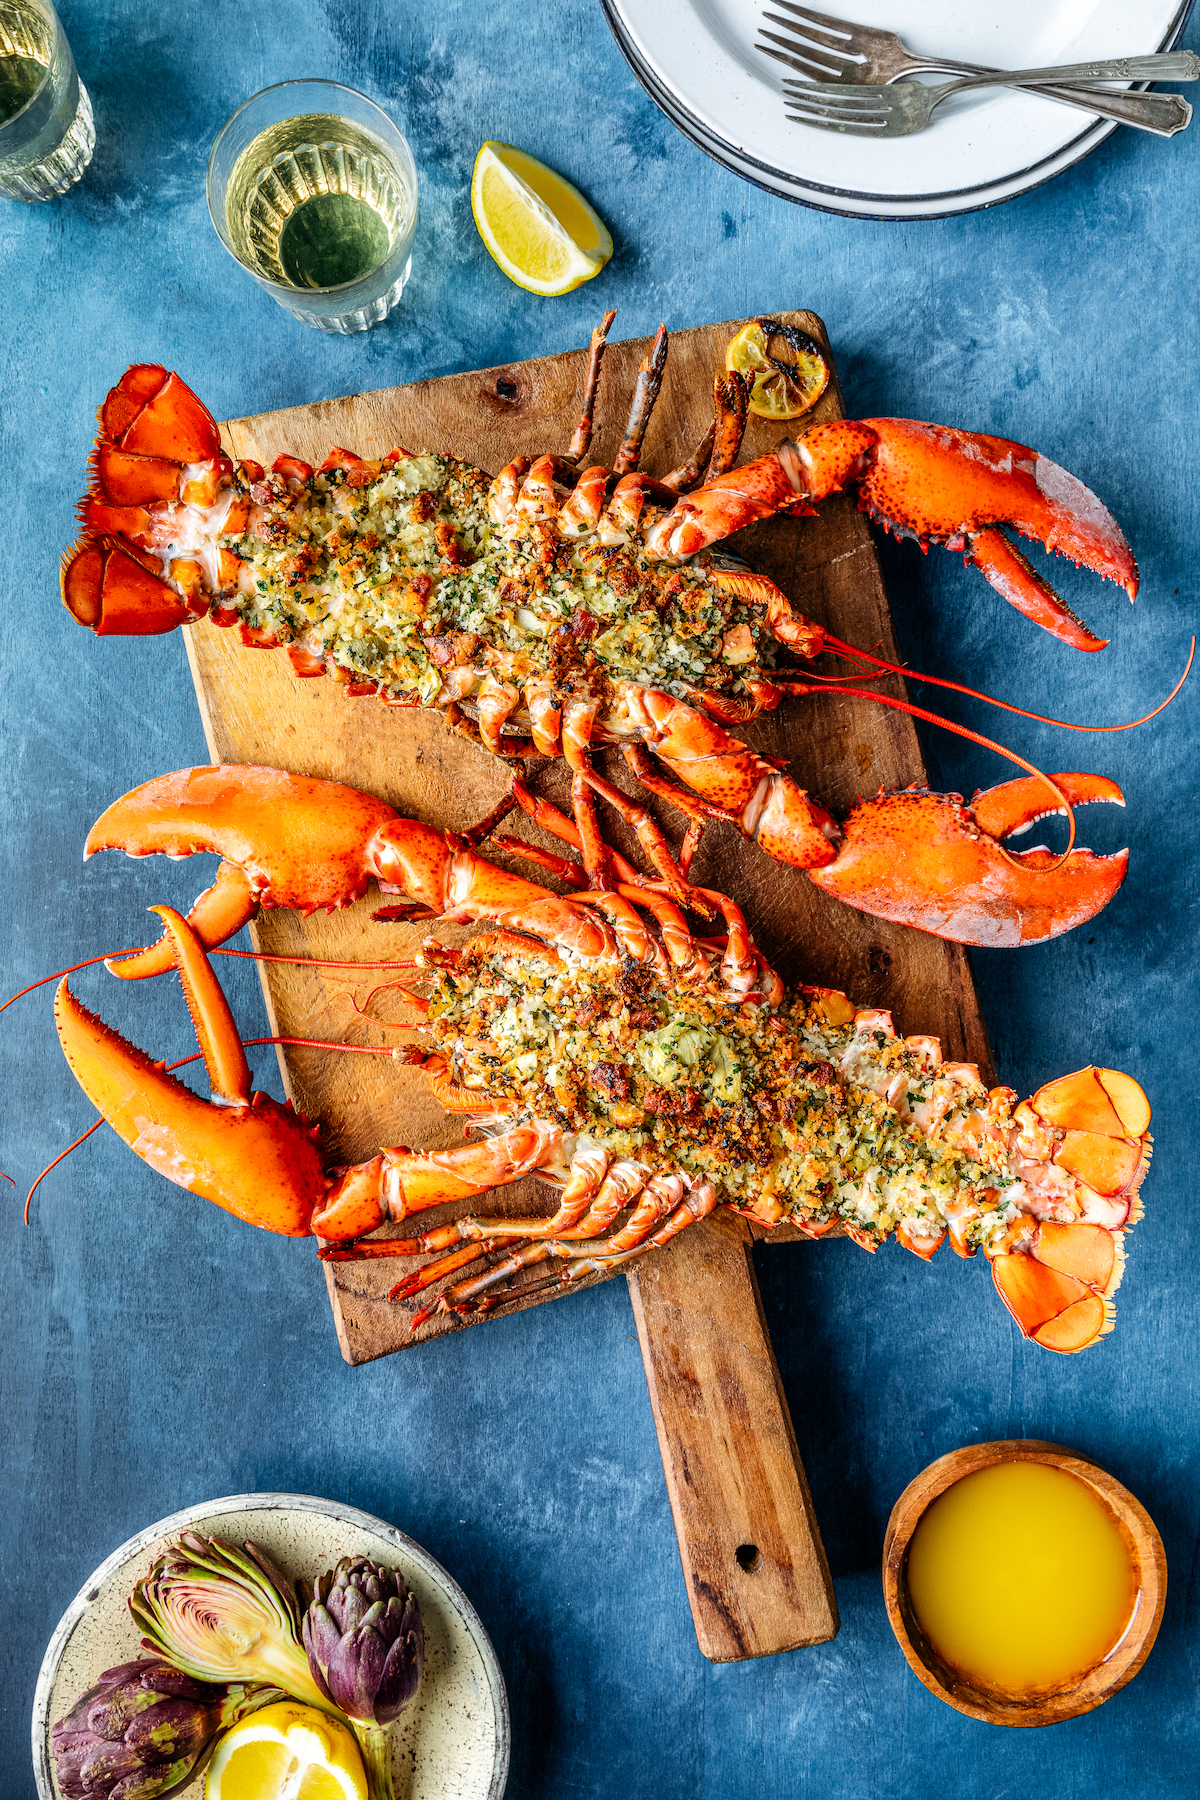 Whole Stuffed Maine Lobster with Herby Artichoke and Pancetta Bread Crumbs